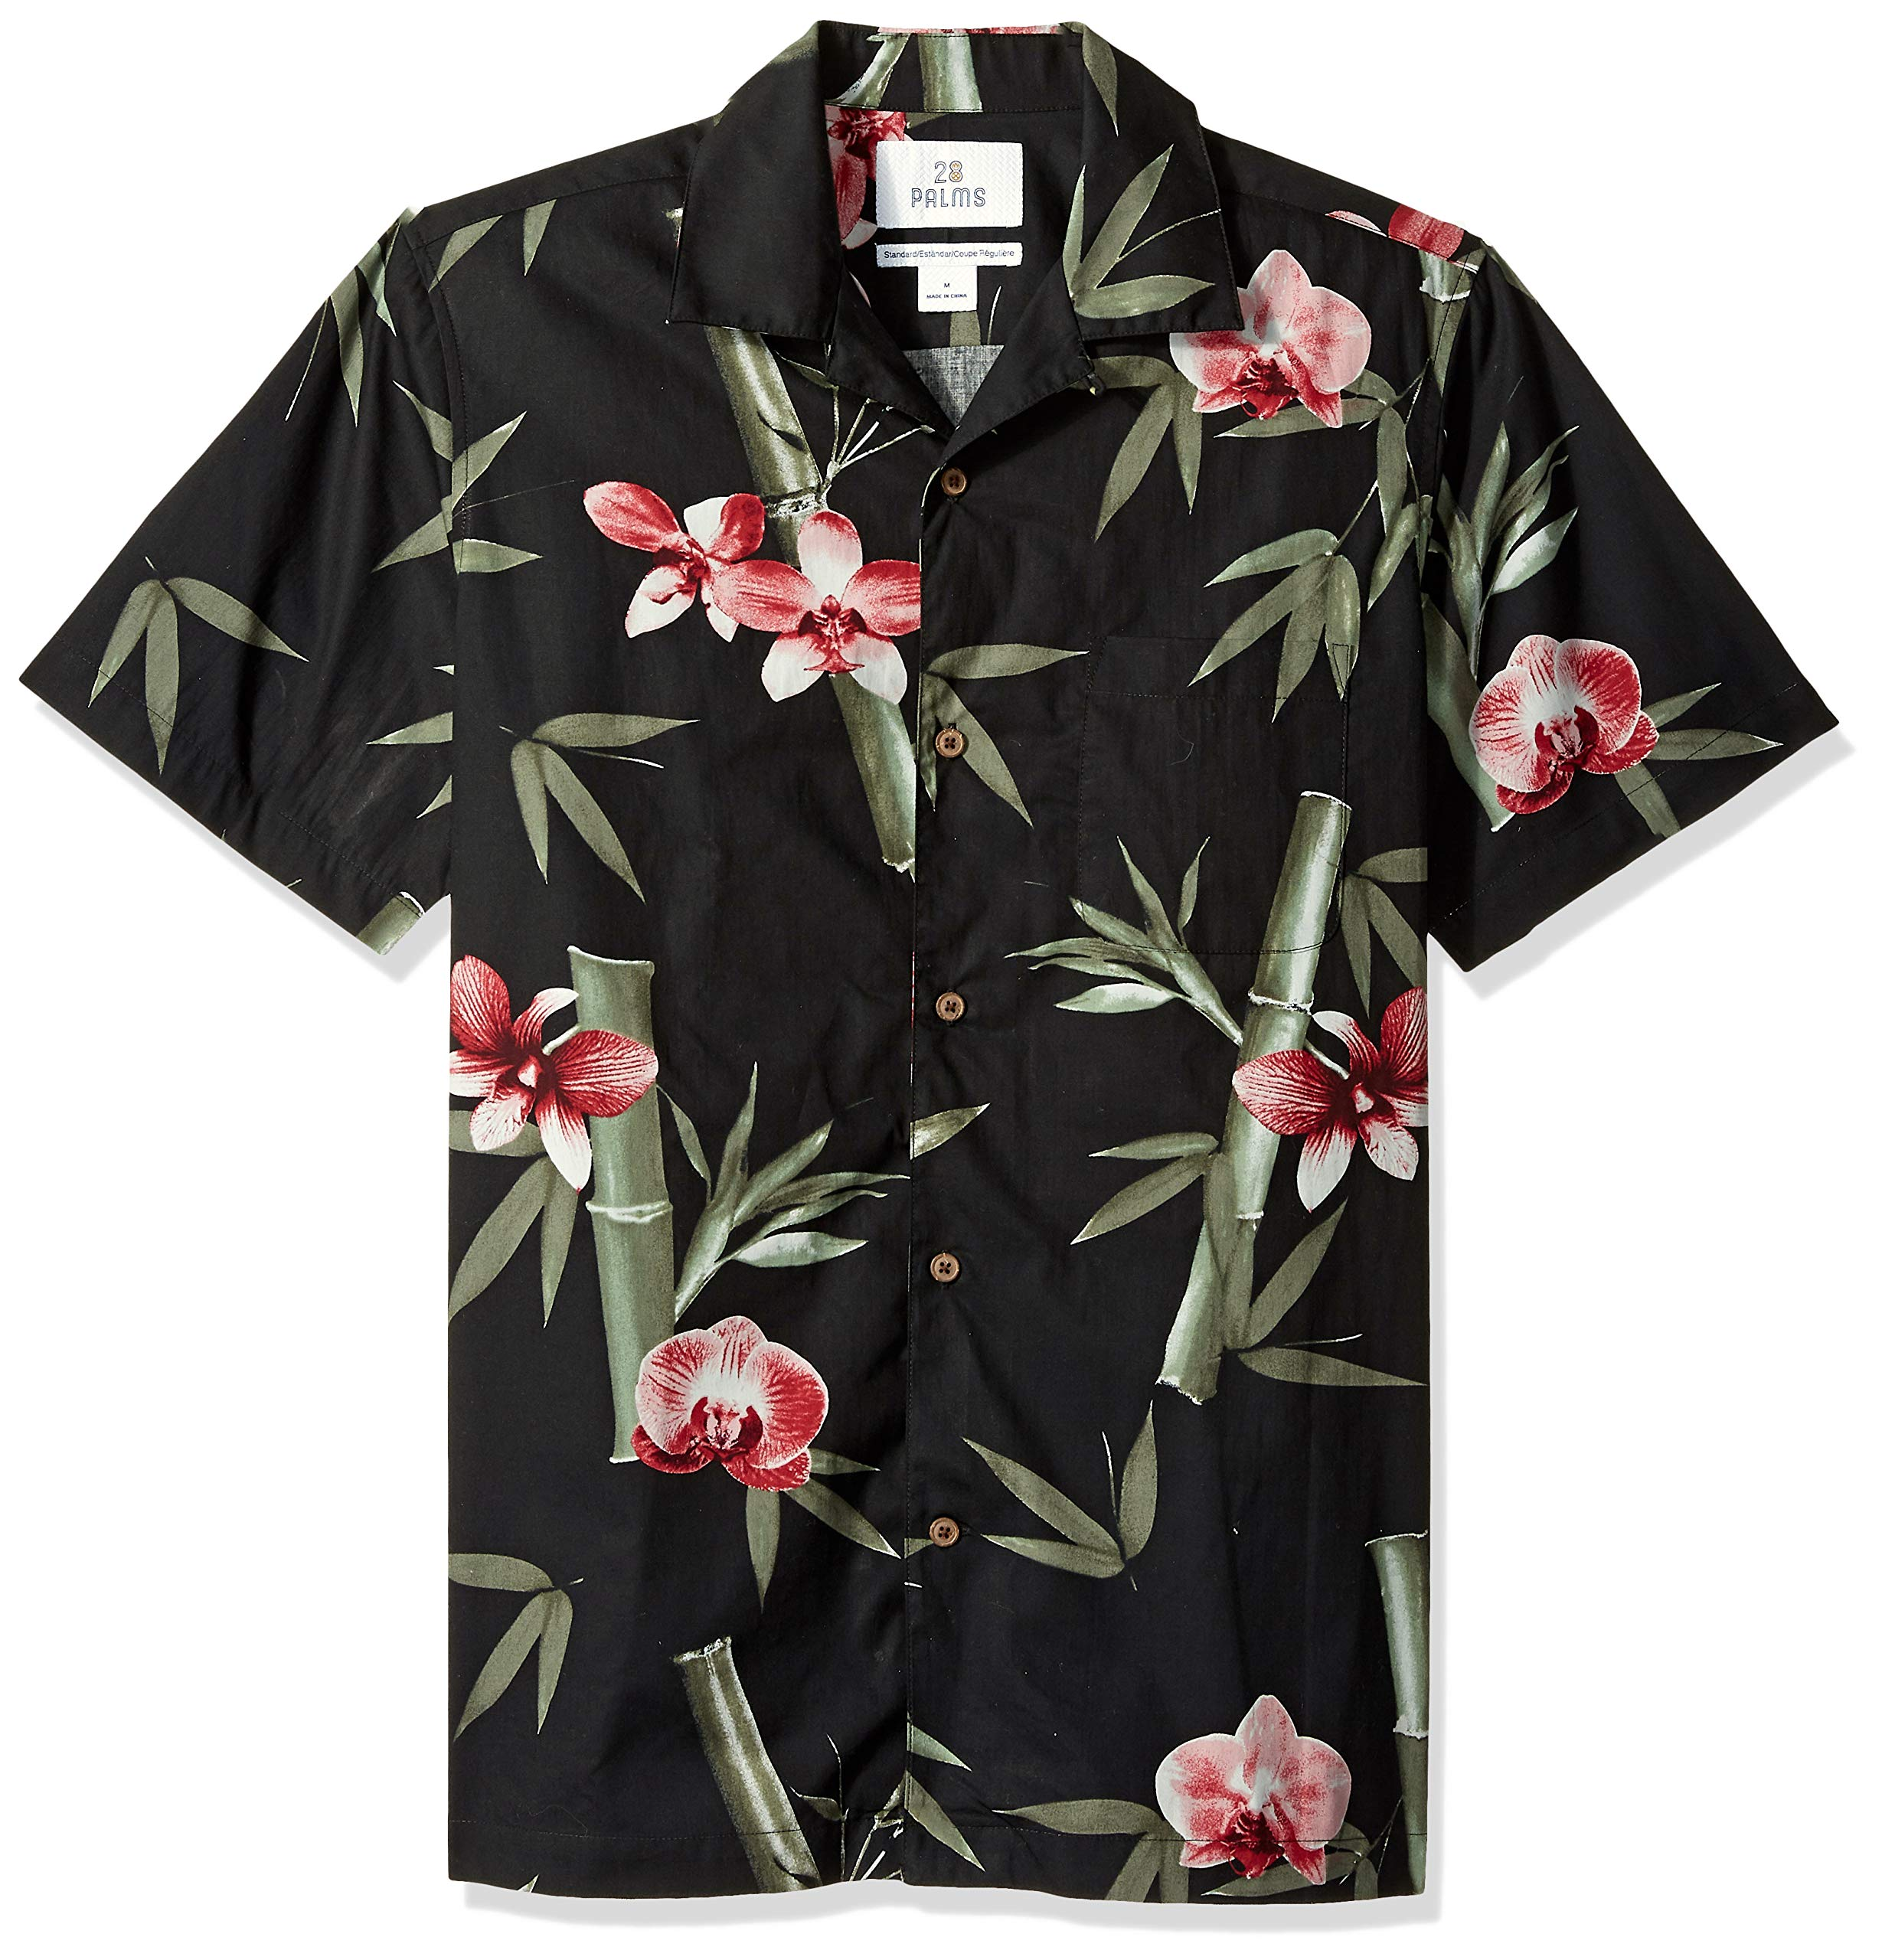 28 Palms Men's Standard-Fit 100% Cotton Tropical Hawaiian Shirt, Black/Pink Bamboo Orchid X-Large